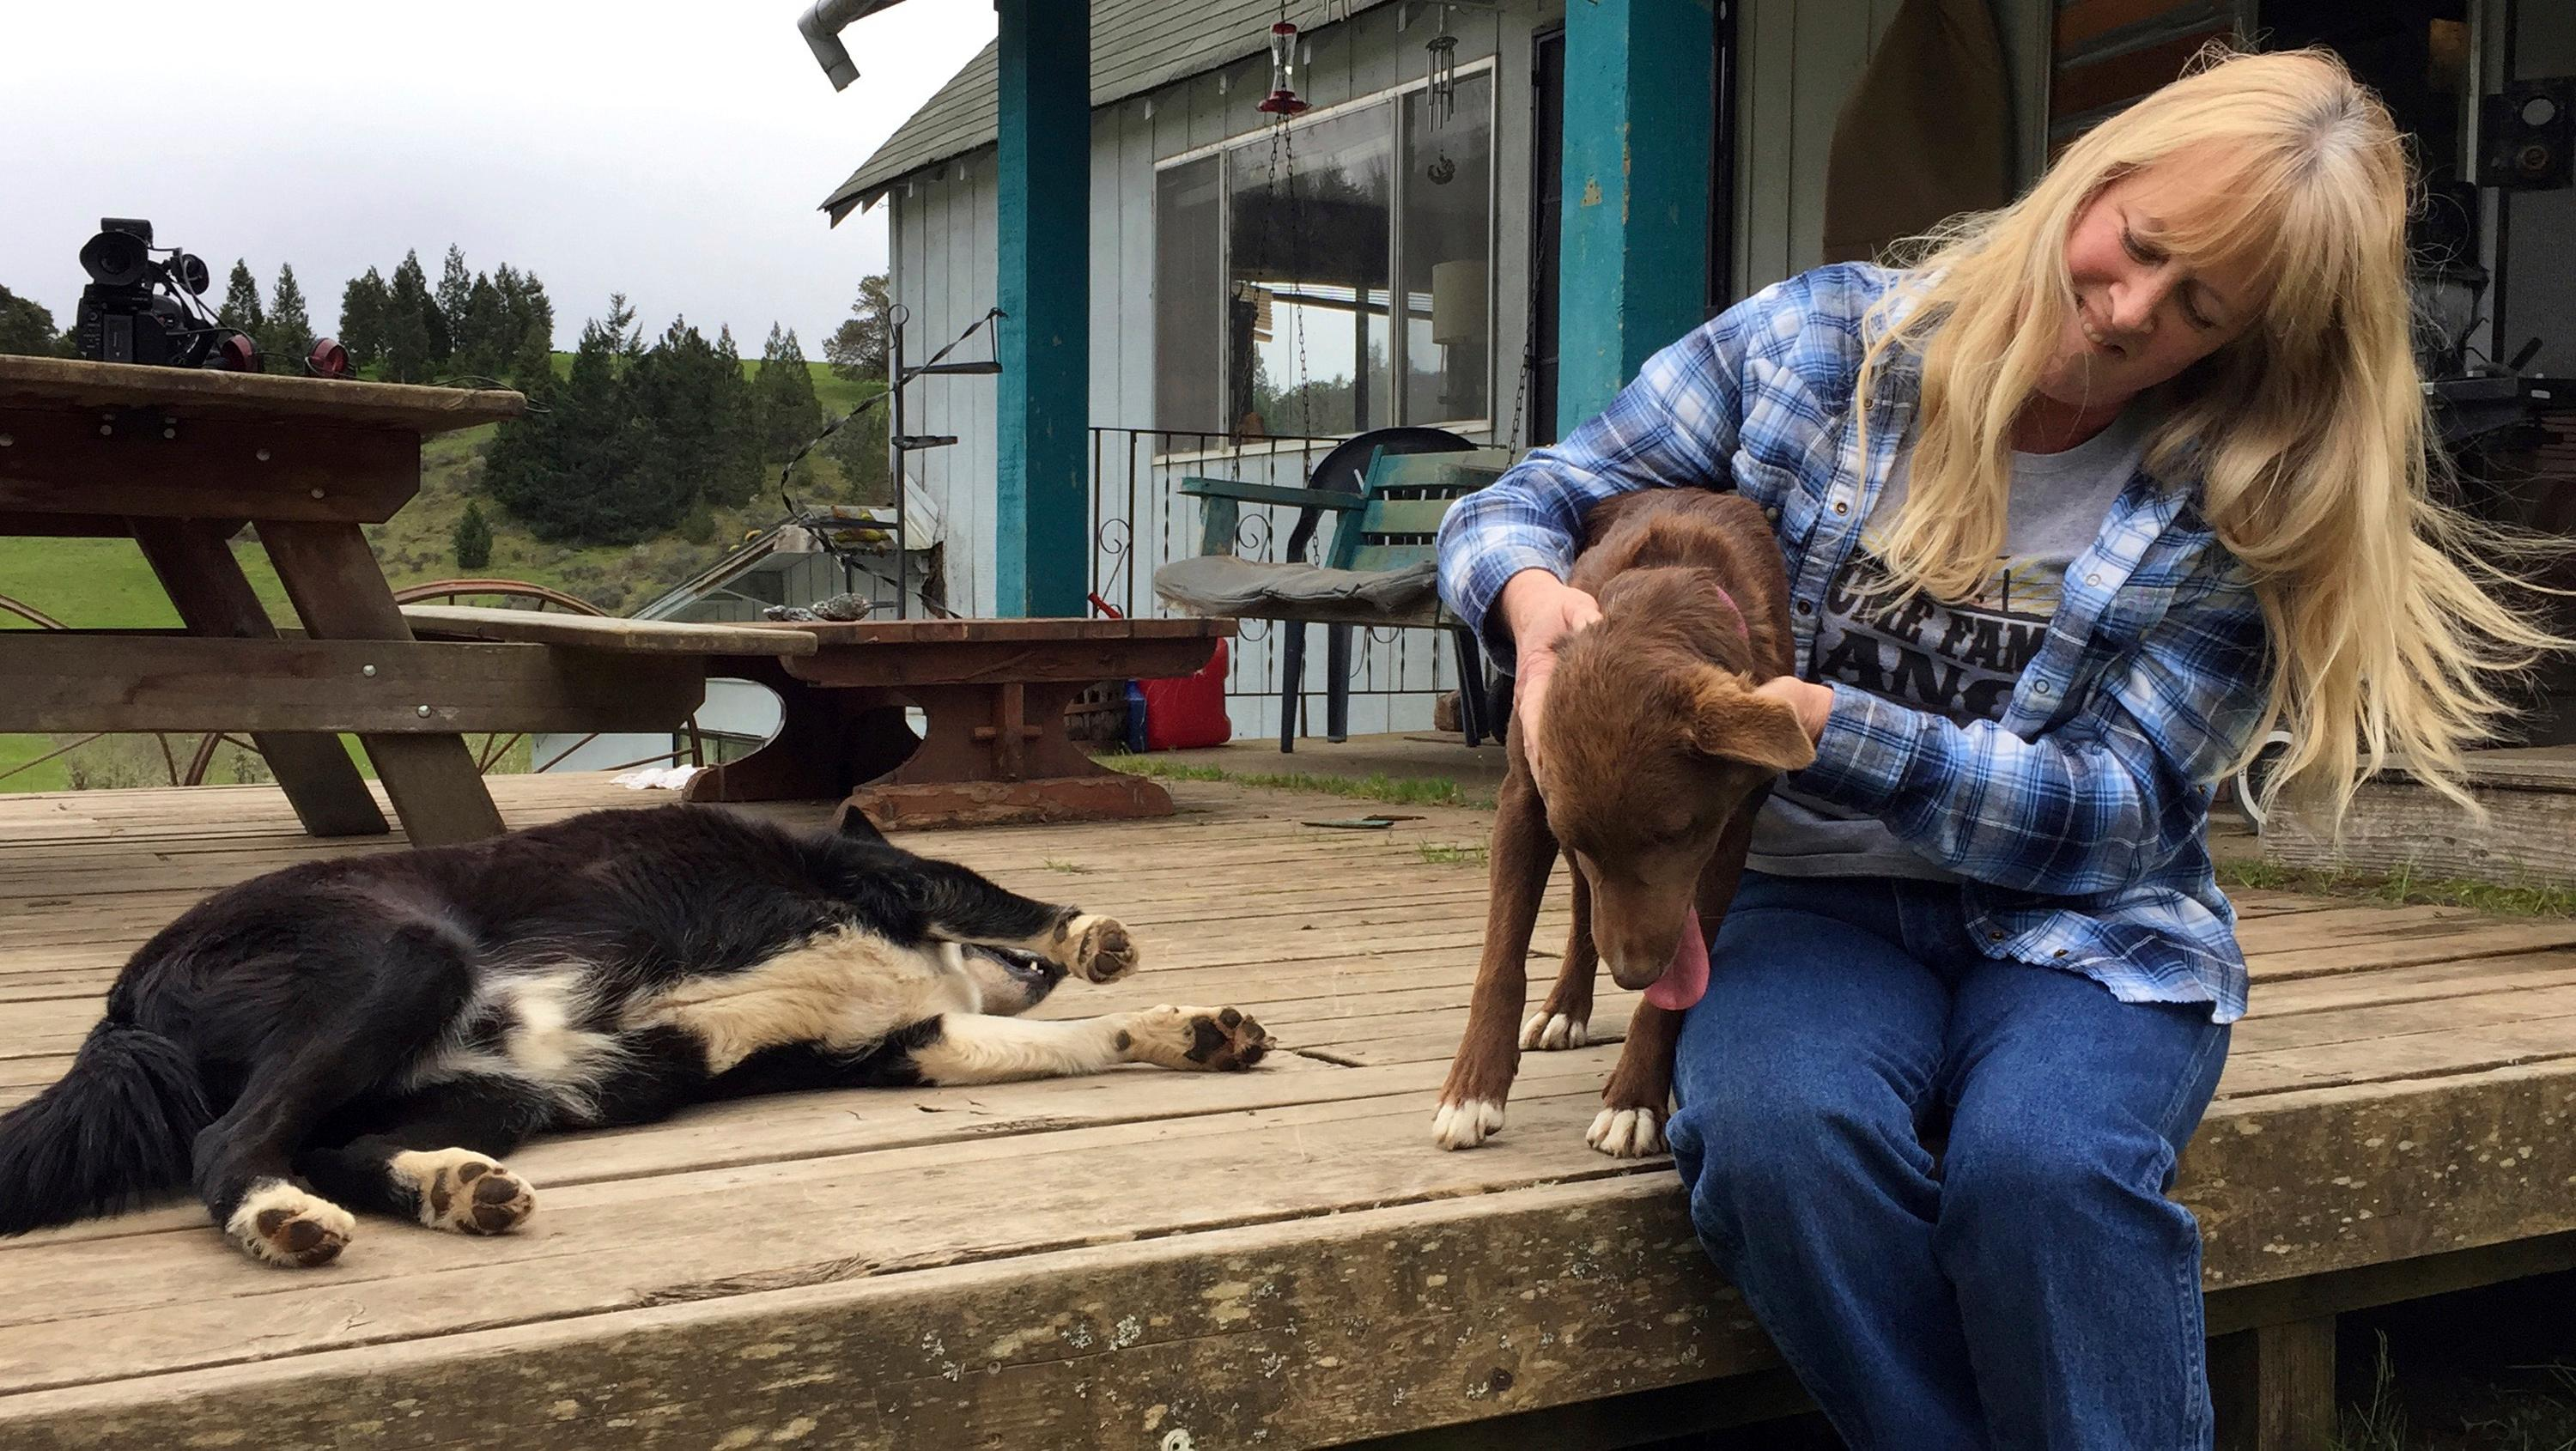 In this April 5, 2017 photo, longtime Tiller resident Paula Ellis plays with her dogs outside her home in Tiller, Ore. Ellis spent her childhood in Tiller hunting and riding horses and now worries about what will happen to the tiny, dying timber town. Tiller, a dot on a map in remote southwestern Oregon, is for sale for $3.5 million and the elementary school is for sale separately for $350,000. (AP Photo/Gillian Flaccus)